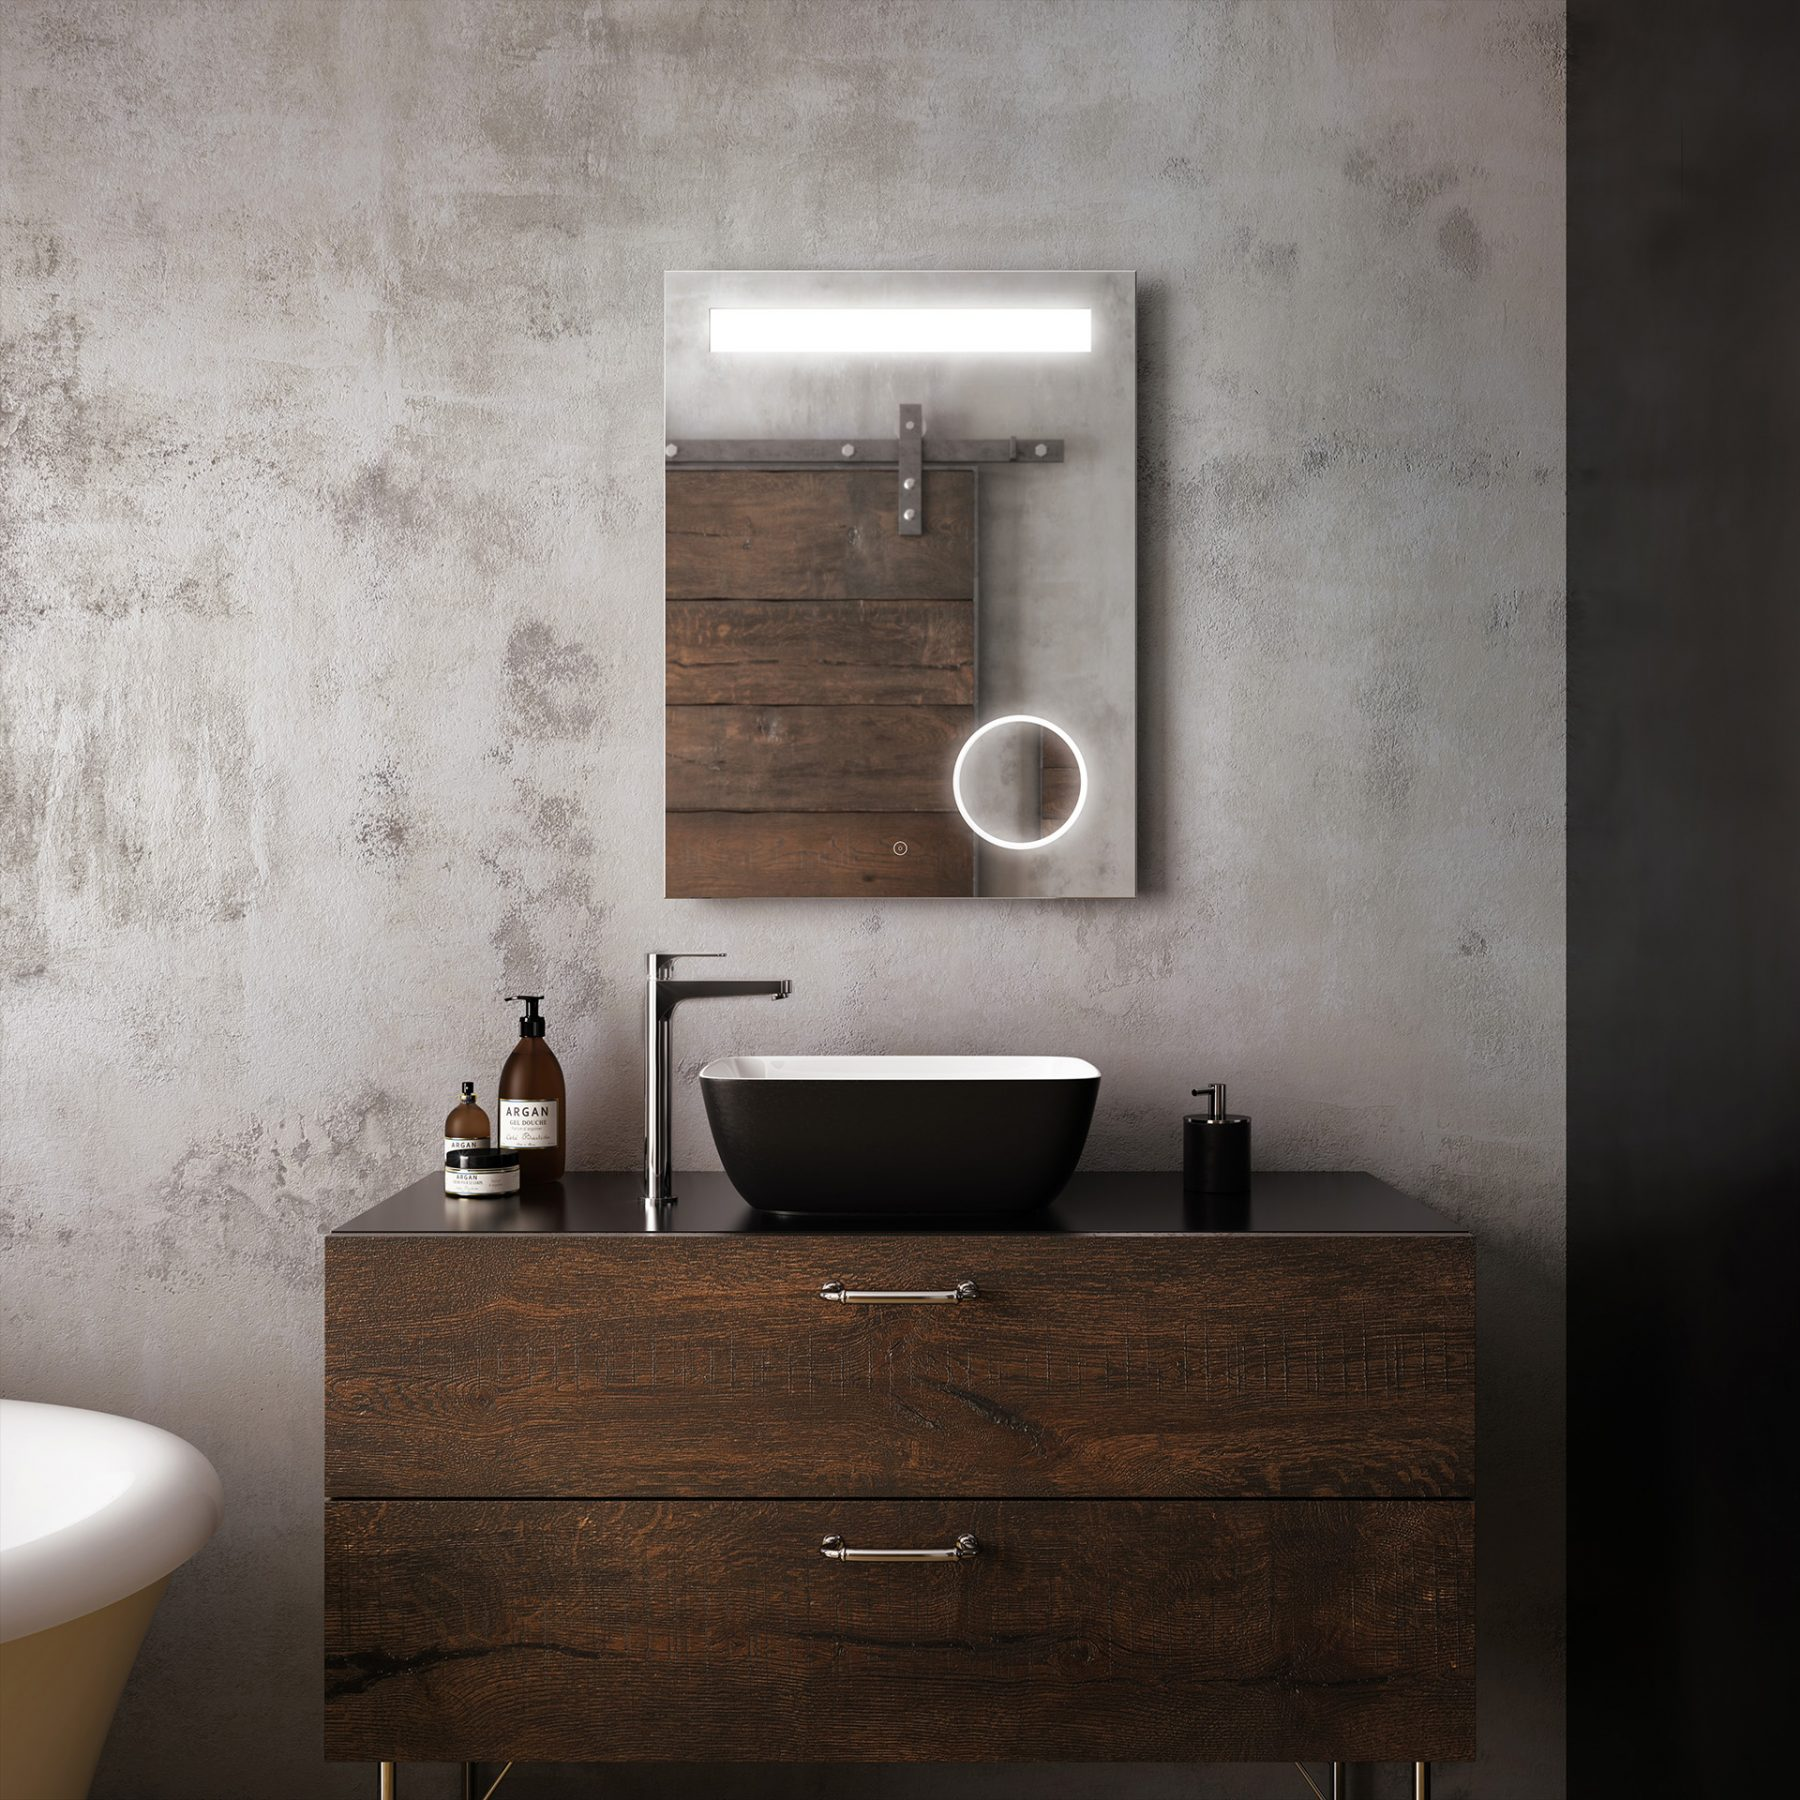 photo-realistic-light-mirror-bathroom